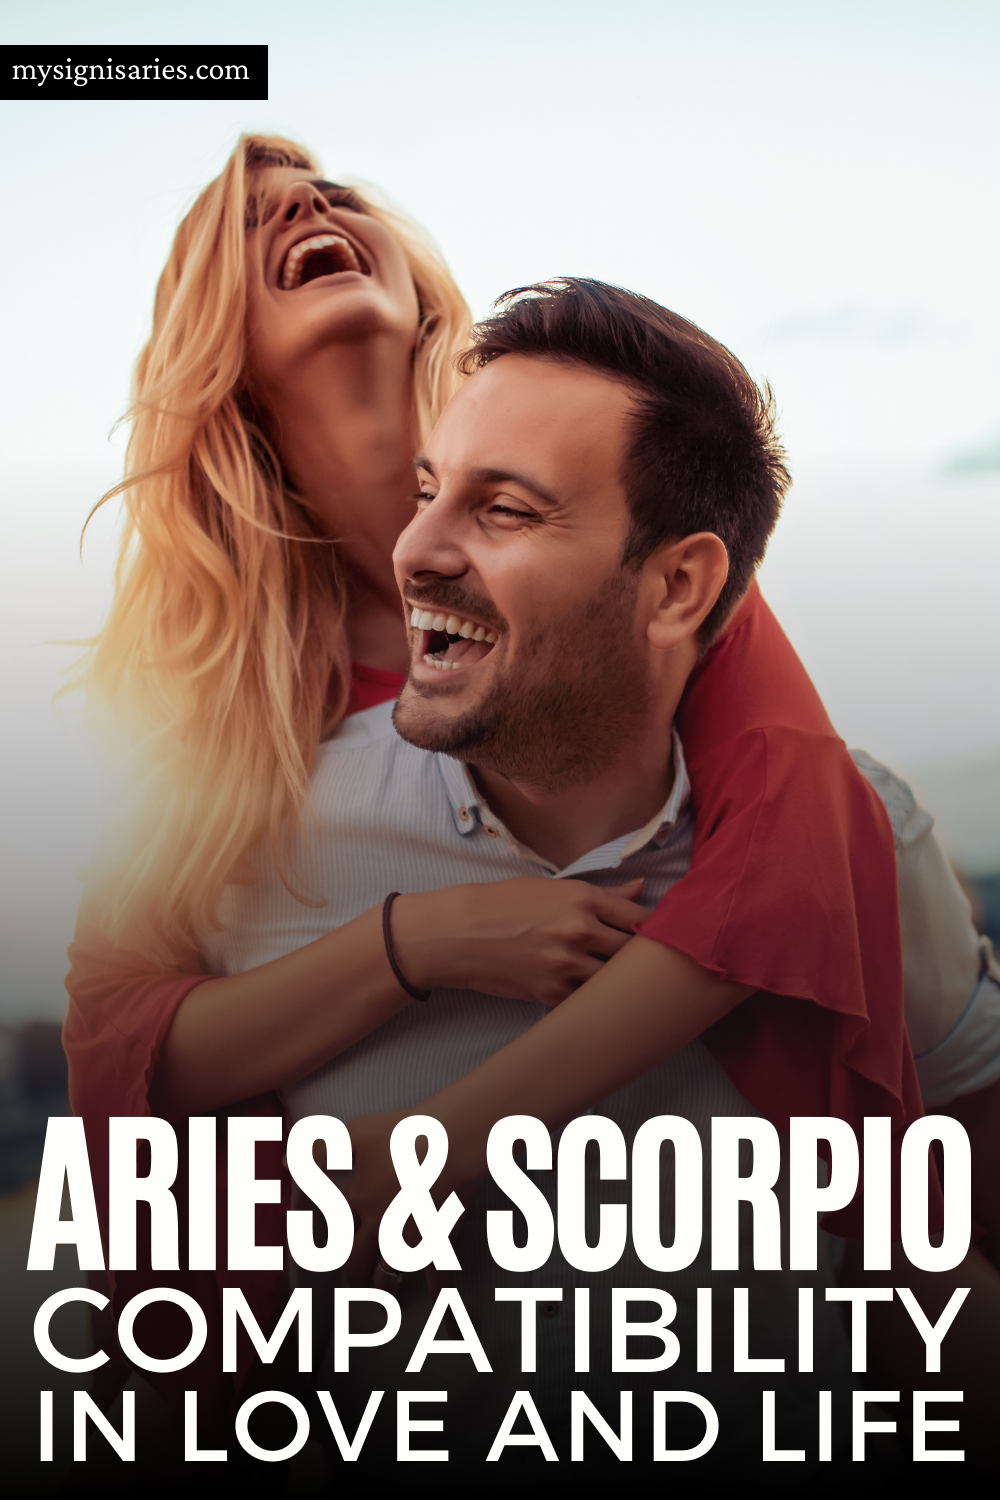 Aries And Scorpio Compatibility In Love And Life #aries #scorpio #arieslove #ariescompatibility #zodiac #astrology